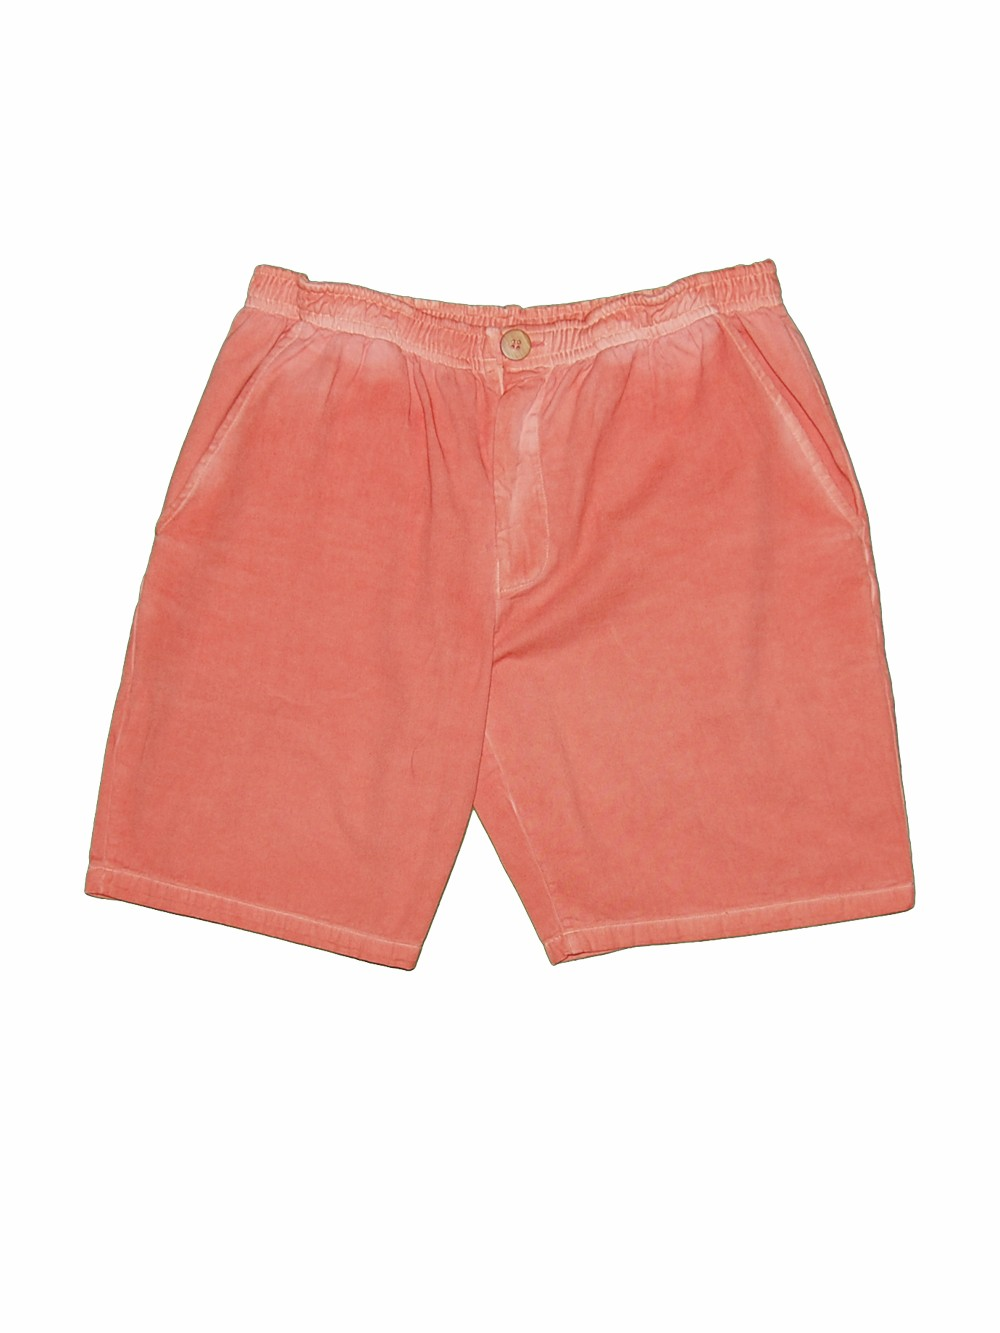 Organic pants made with recycled dye